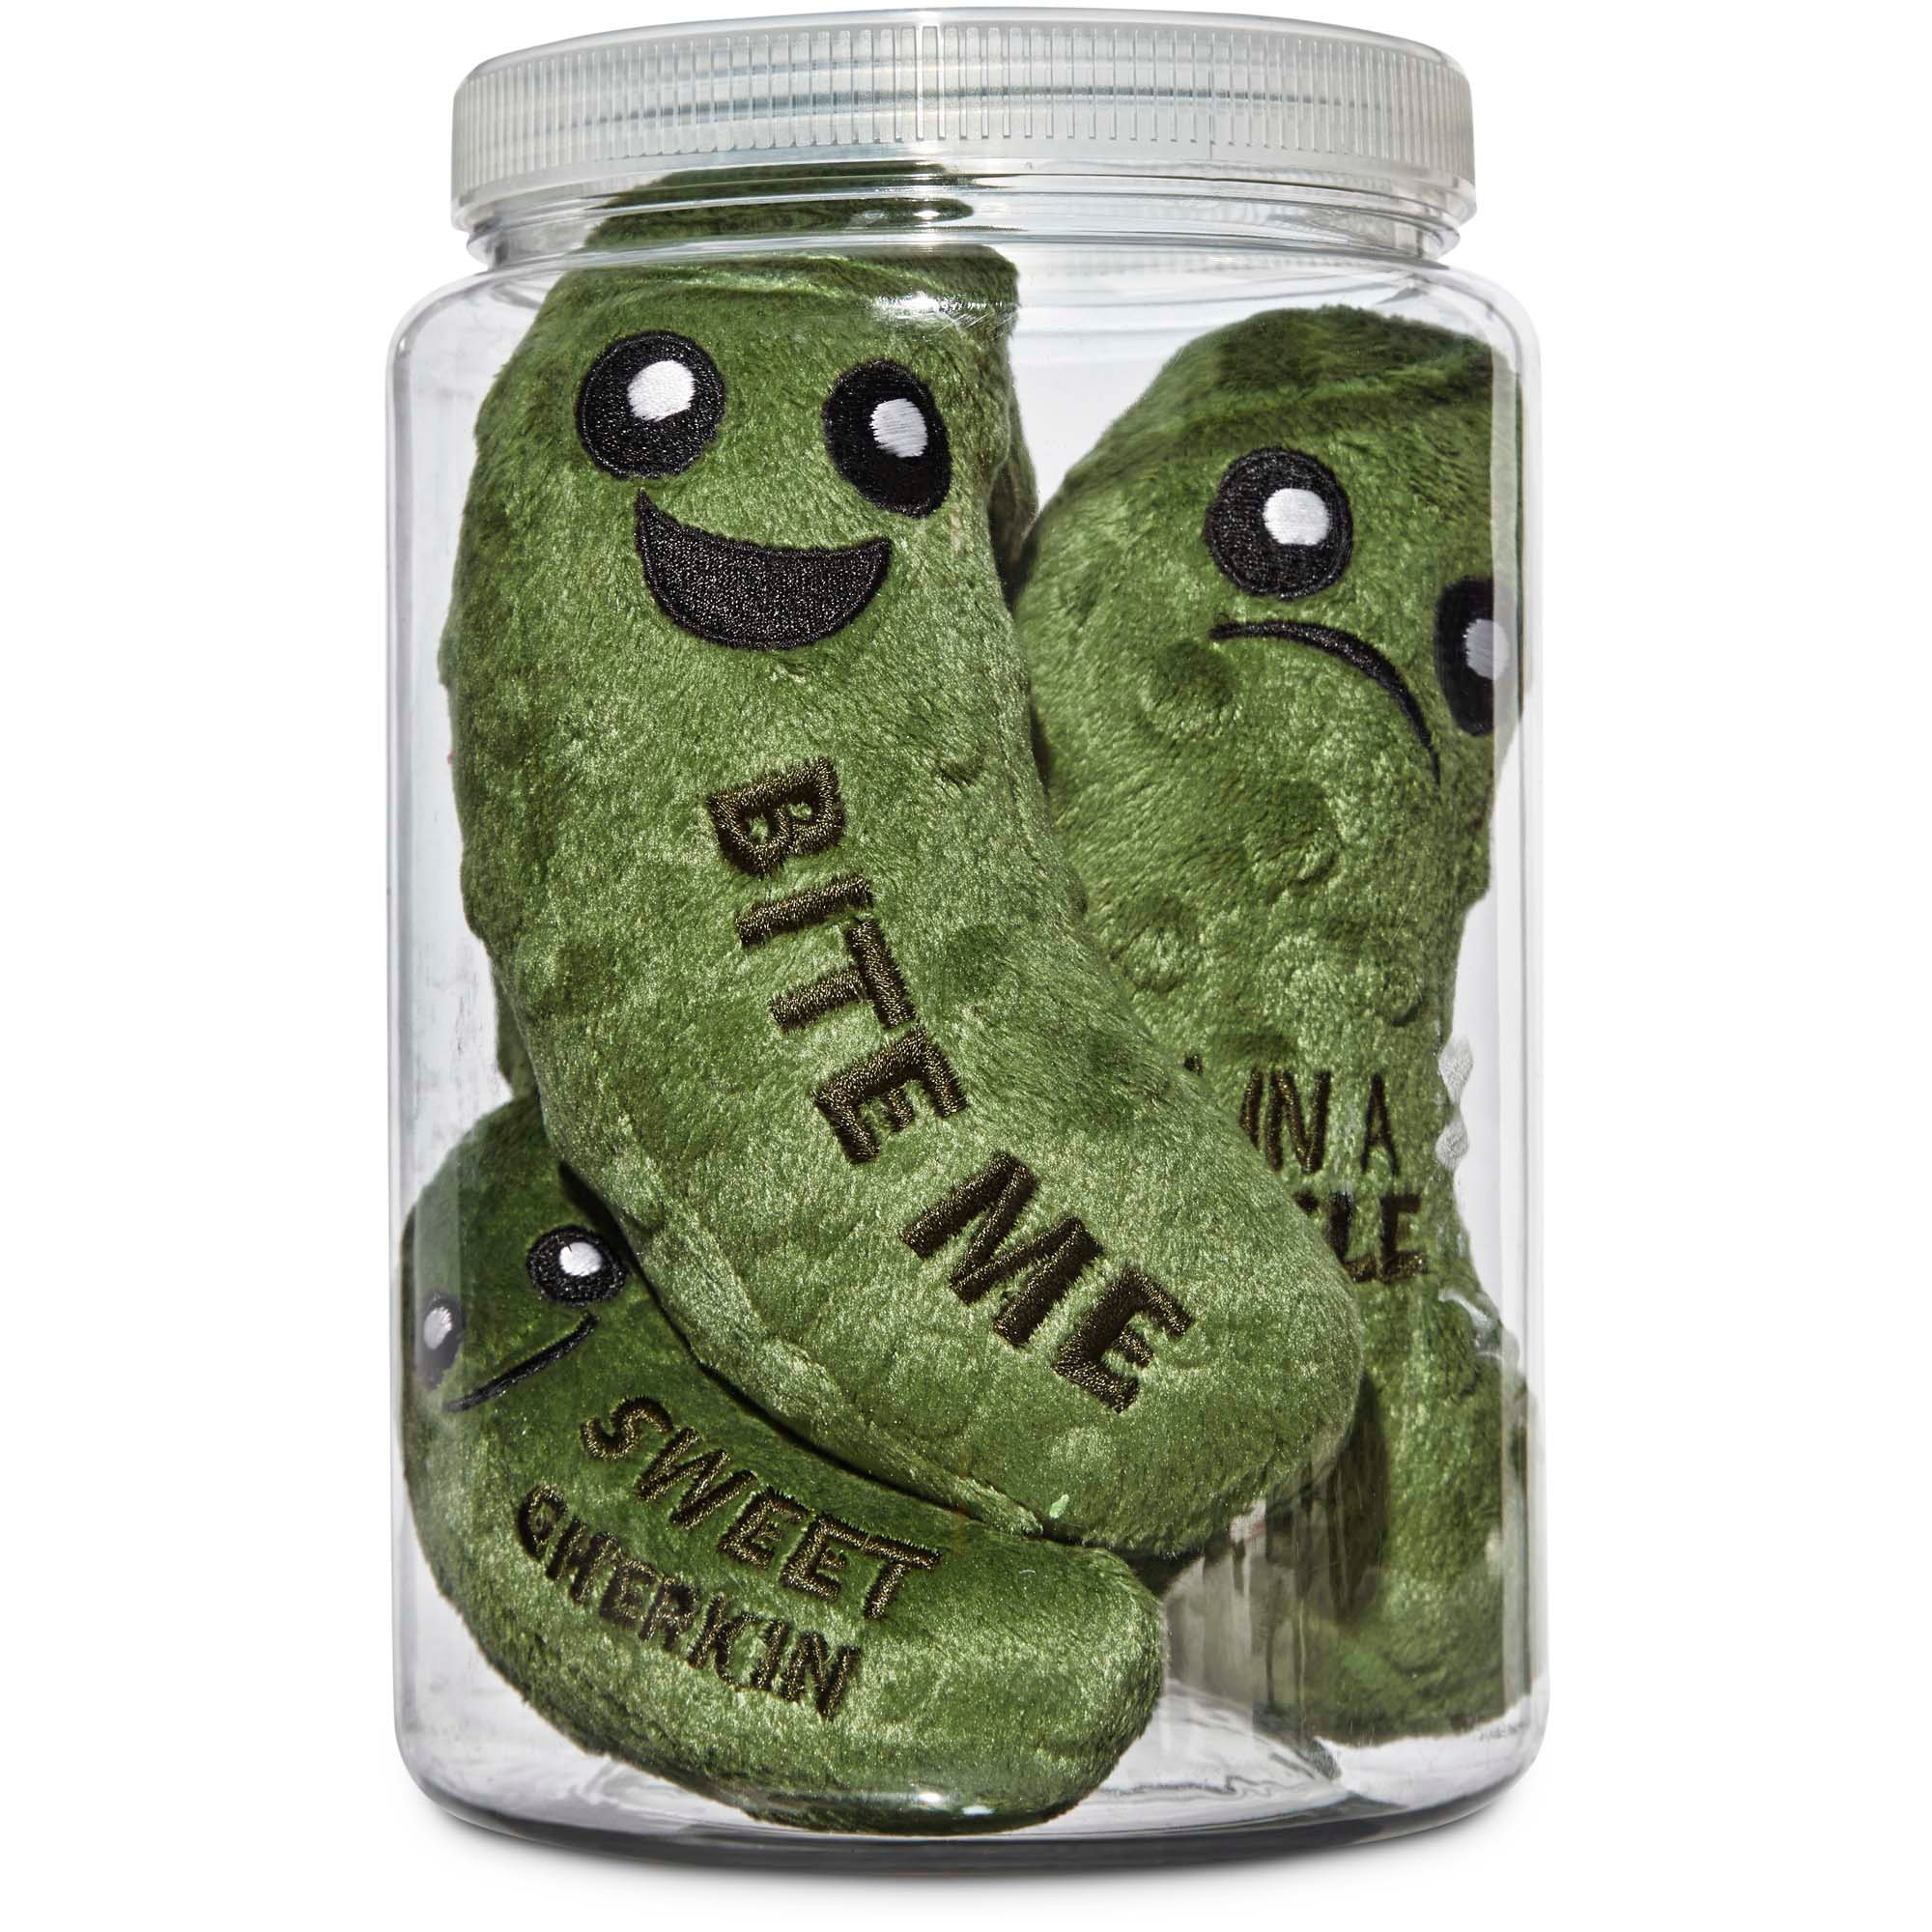 Leaps Amp Bounds Play Plush Pickle Jar Dog Toy Petco